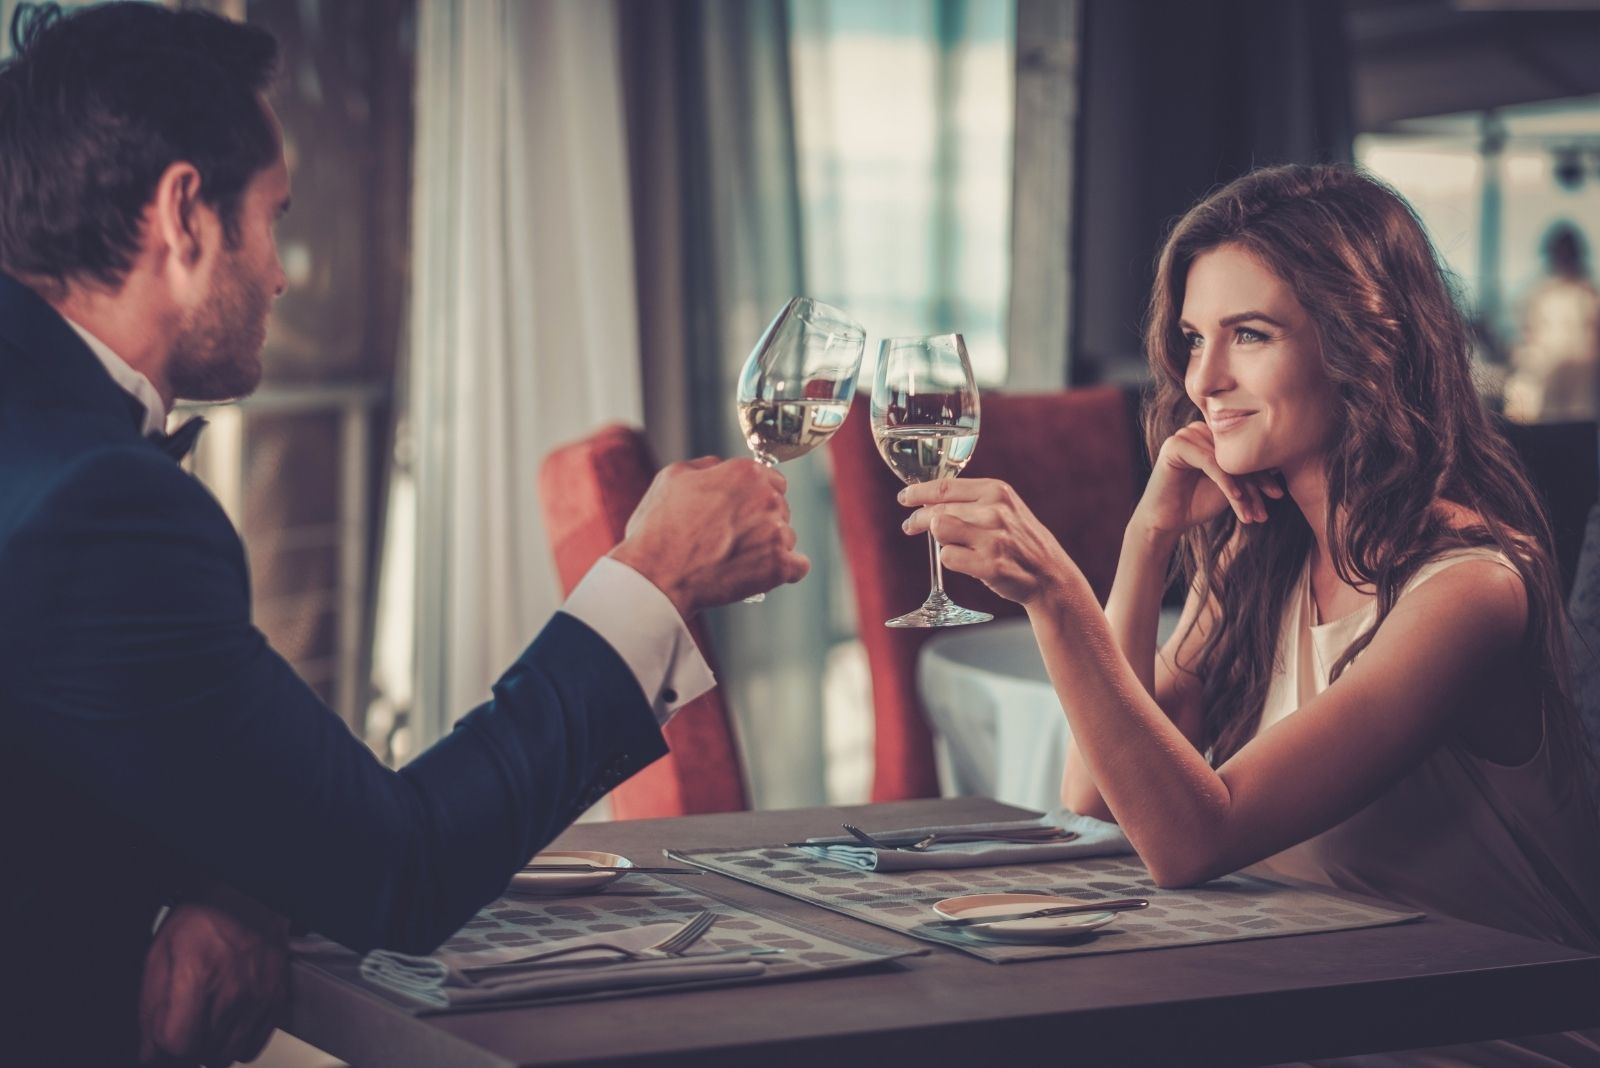 romantic couple dating in a restaurant clinking their wine glasses